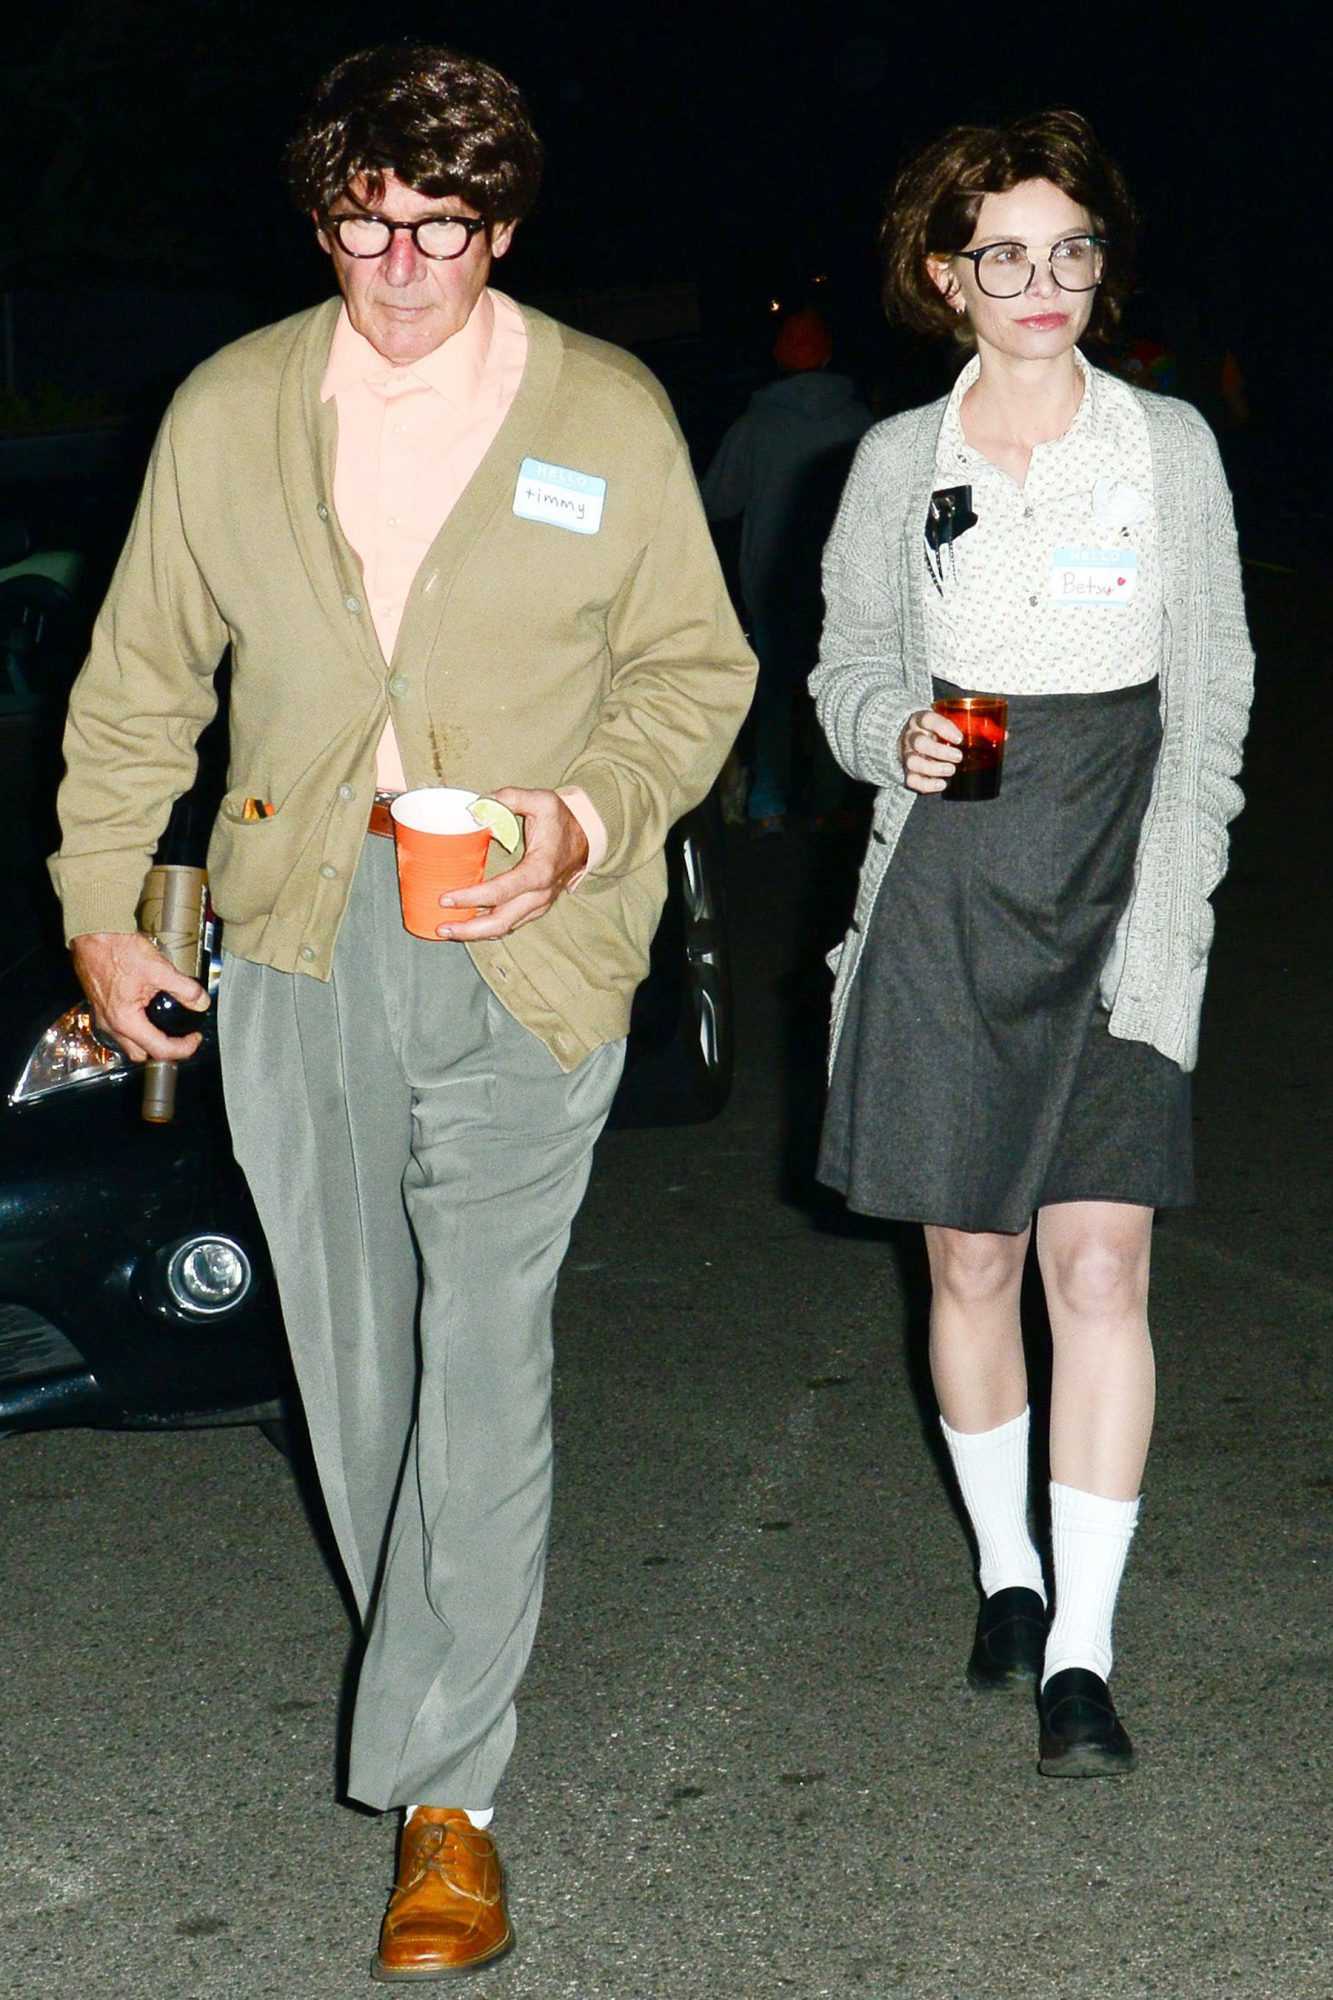 Harrison Ford and Calista Flockhart in Halloween costume, California, America - 31 Oct 2012